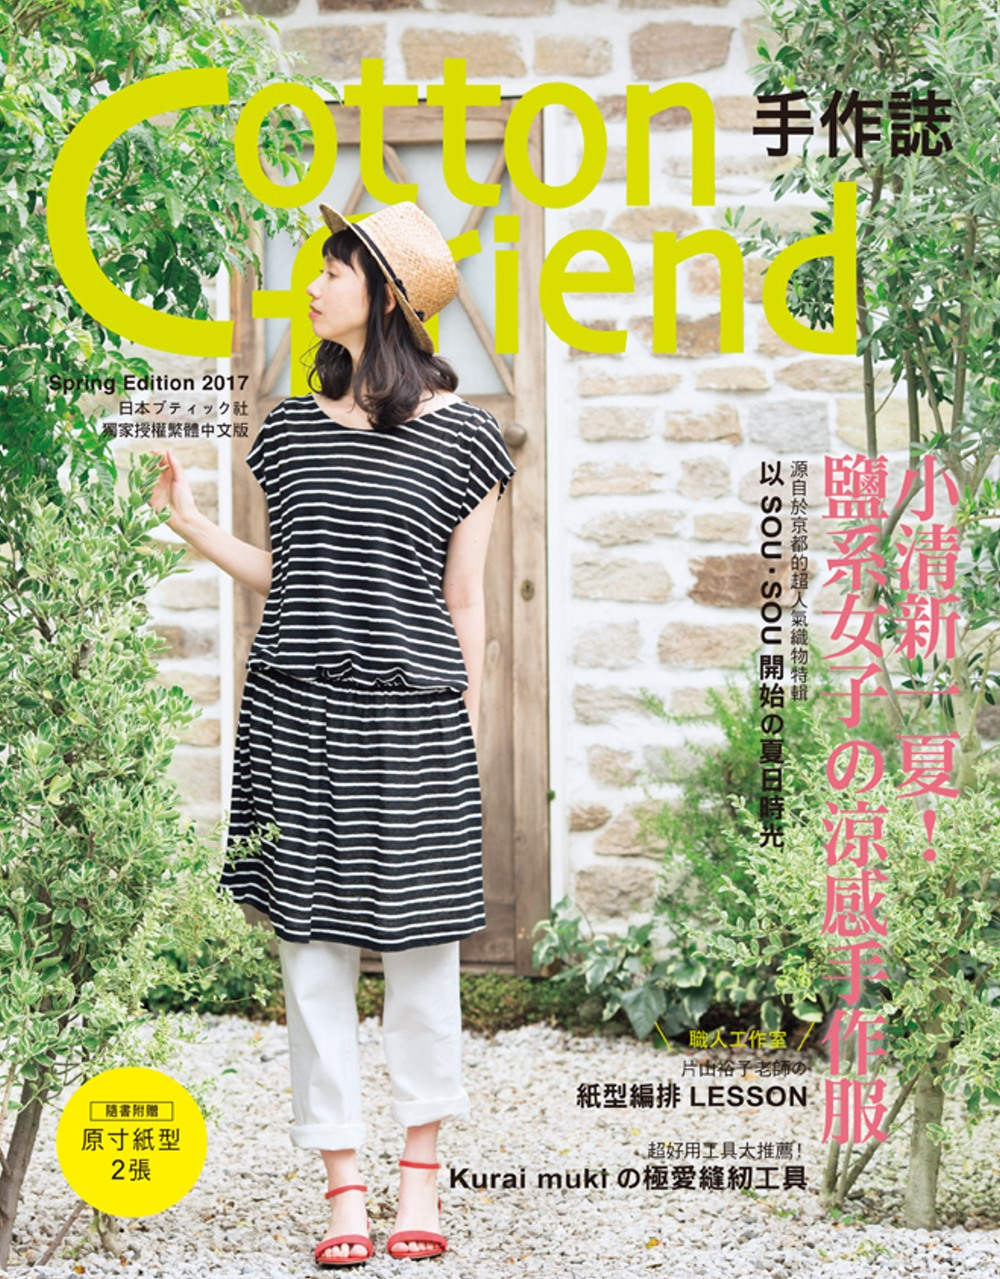 Cotton friend 手作誌37:小清新一夏!鹽系女子的涼感手作服